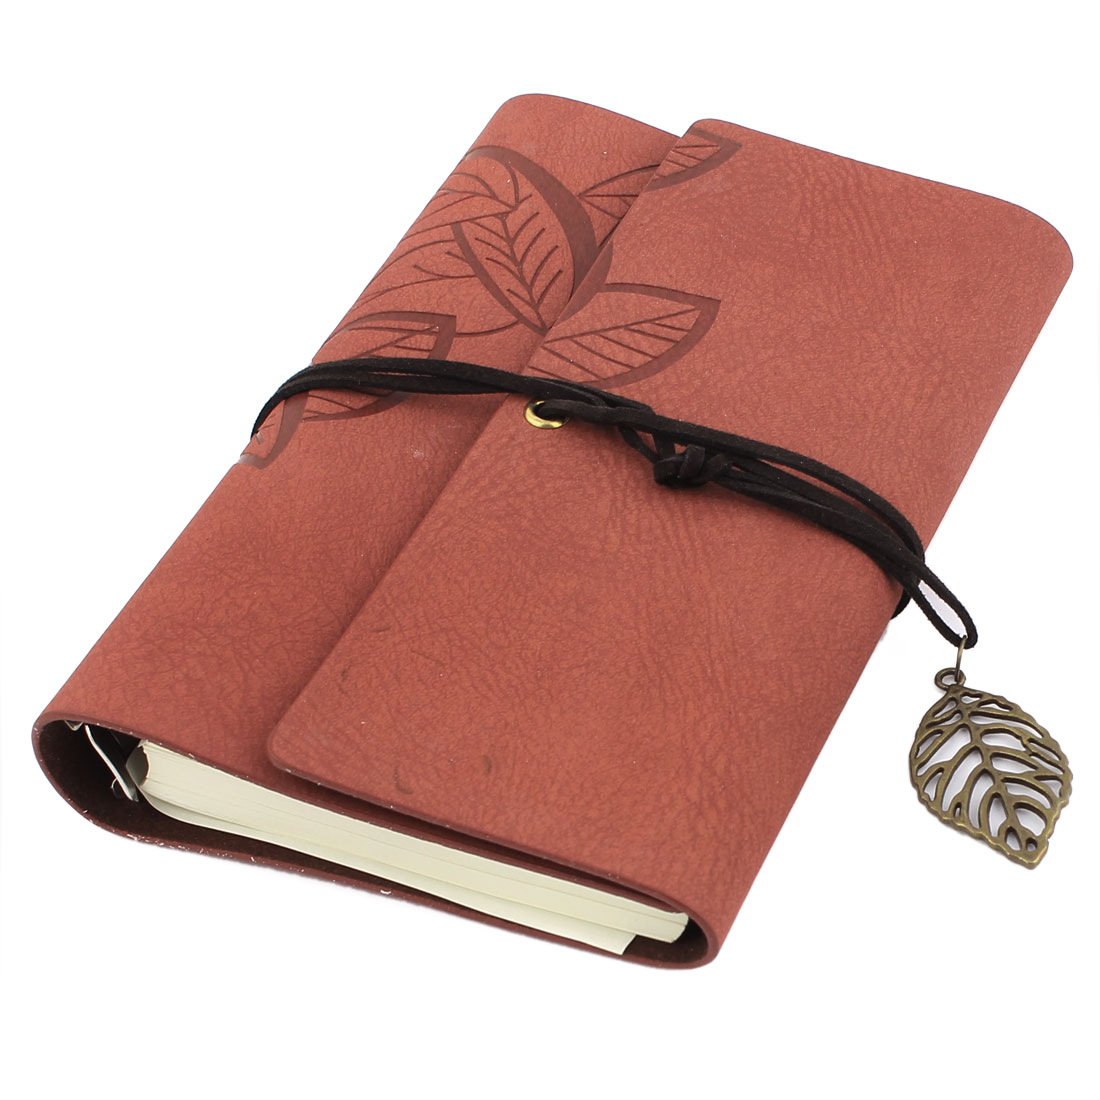 Leaf Pattern Cover Paper Diary Memo Notepad Notebook Brown 18.5 x 12cm